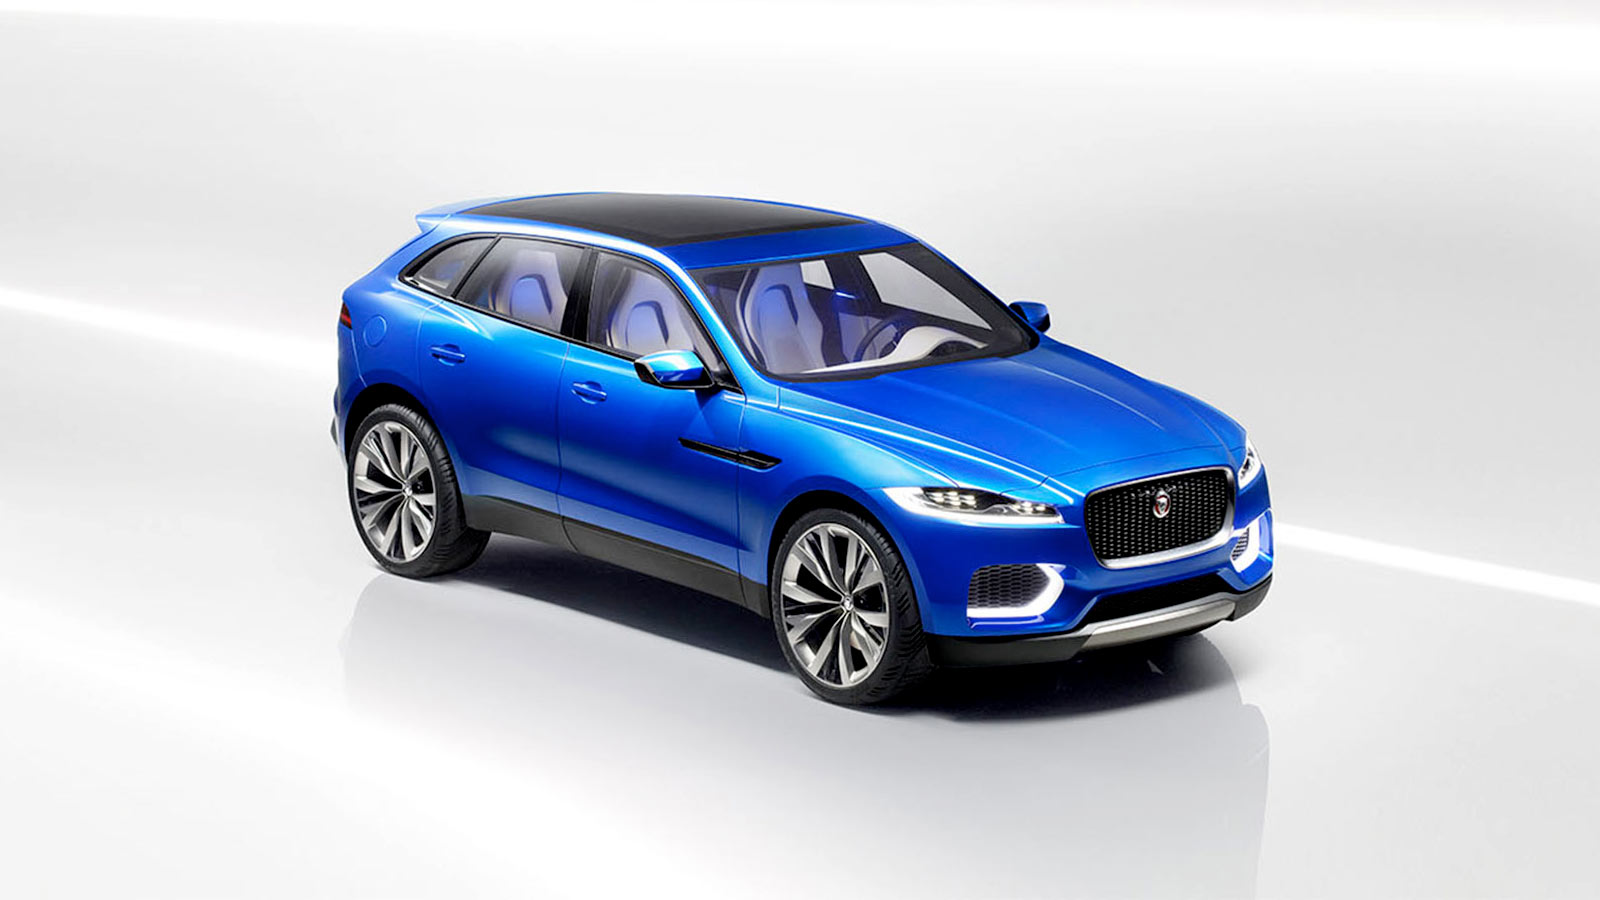 Front three-quarter shot of the Jaguar C-X17 in blue.